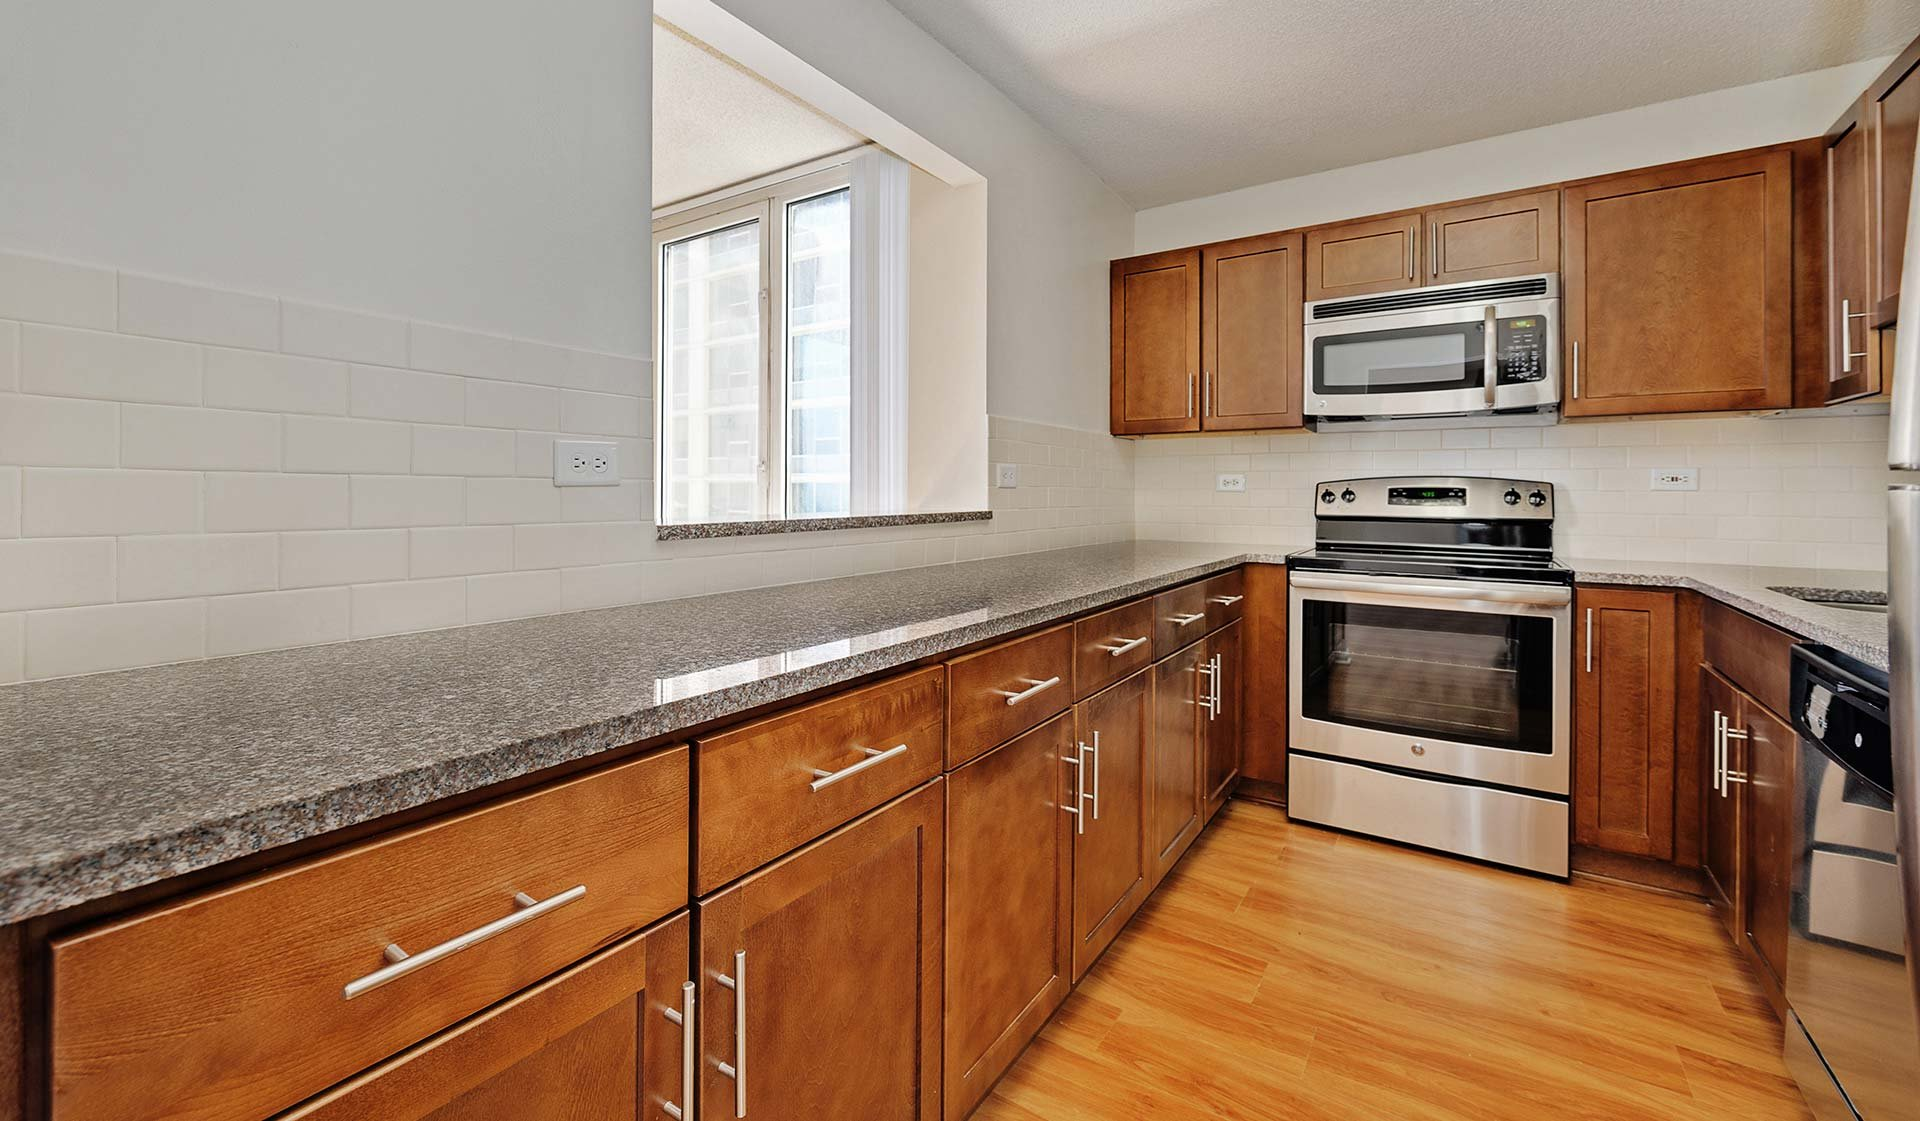 Hyde Park Tower Apartments in Chicago, IL for Rent - Kitchen